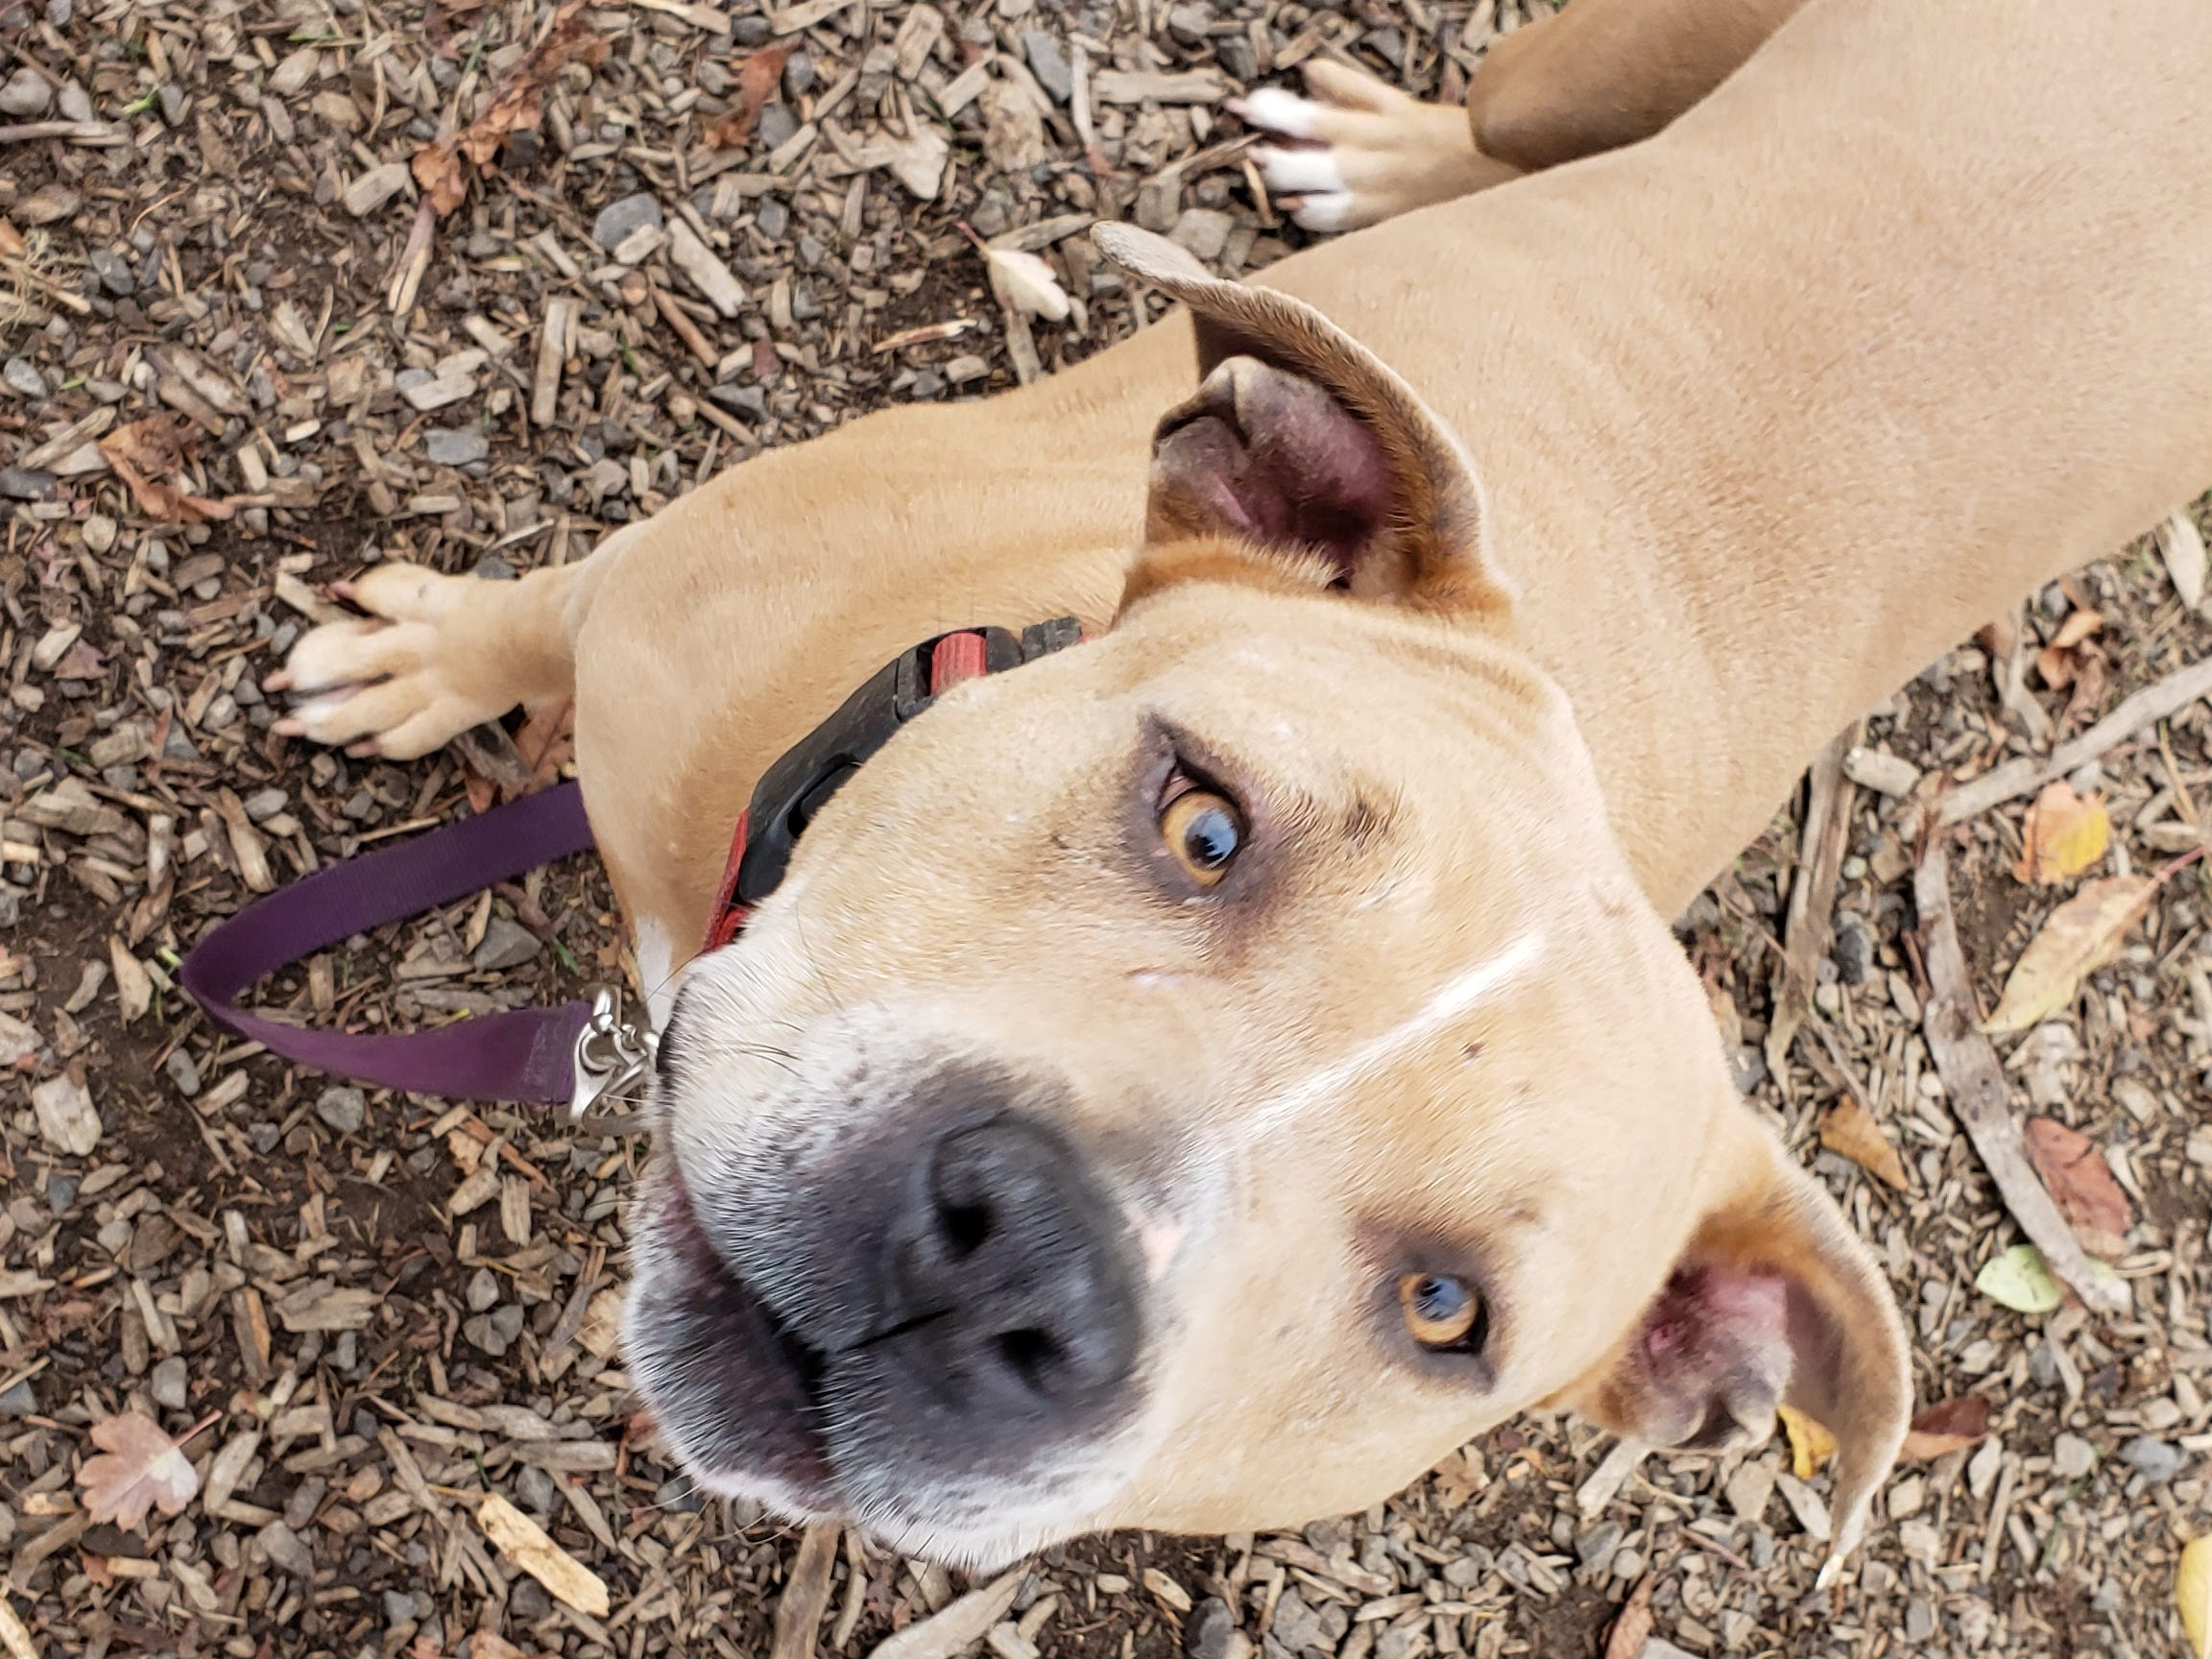 Windy is a 4-year-old female spayed pit bull mix. She is part of Marion County Dog Shelter's special adoption event through Saturday, Dec. 22, where the adoption fee equals the day of the month. Windy can be adopted for $19 on Dec. 19, $20 on Dec. 20, and so on. Purchase of a one-year license is required. Adoption hours are Tuesday through Saturday, 10 a.m. to 4:30 p.m. For information, contact Marion County Dog Services at 503-588-5366 or go to www.MCDogs.net.